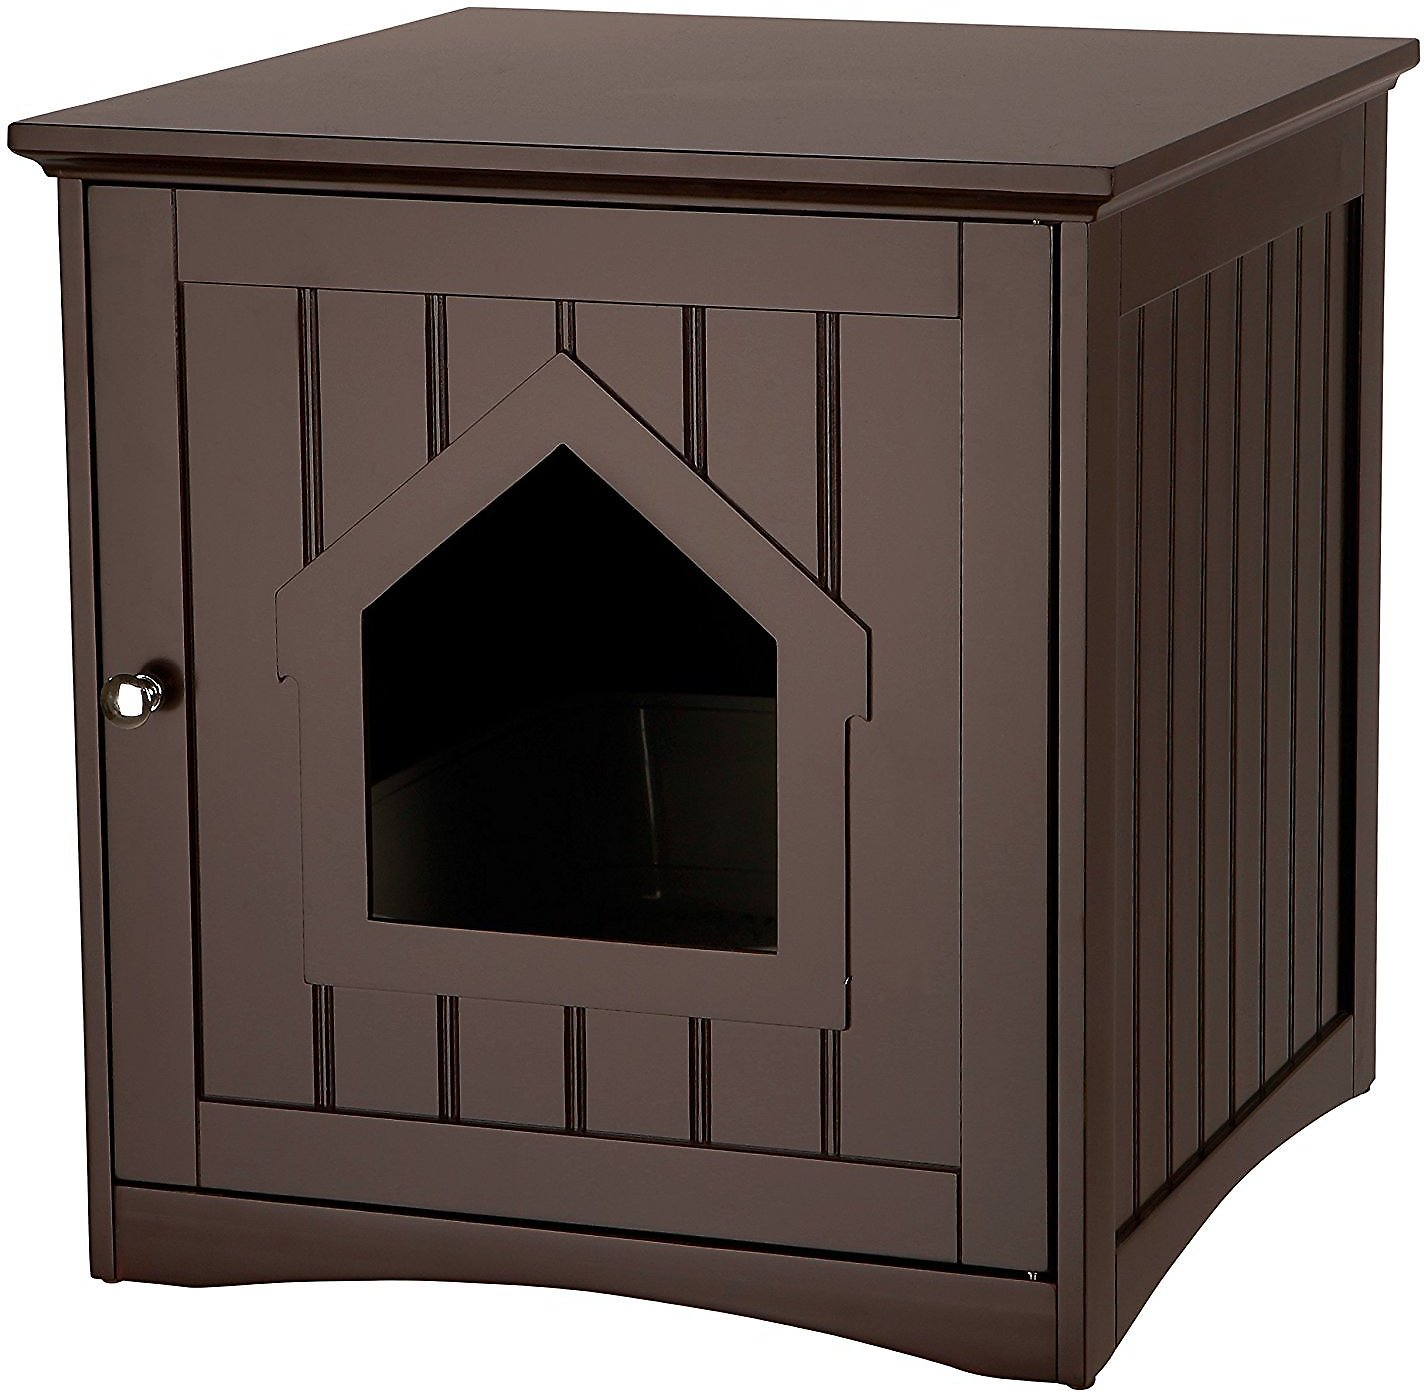 Litter Box Cover Cat Litter Box Cover Dog House Cat Bin Pet Storage Litter Boxes Redefined